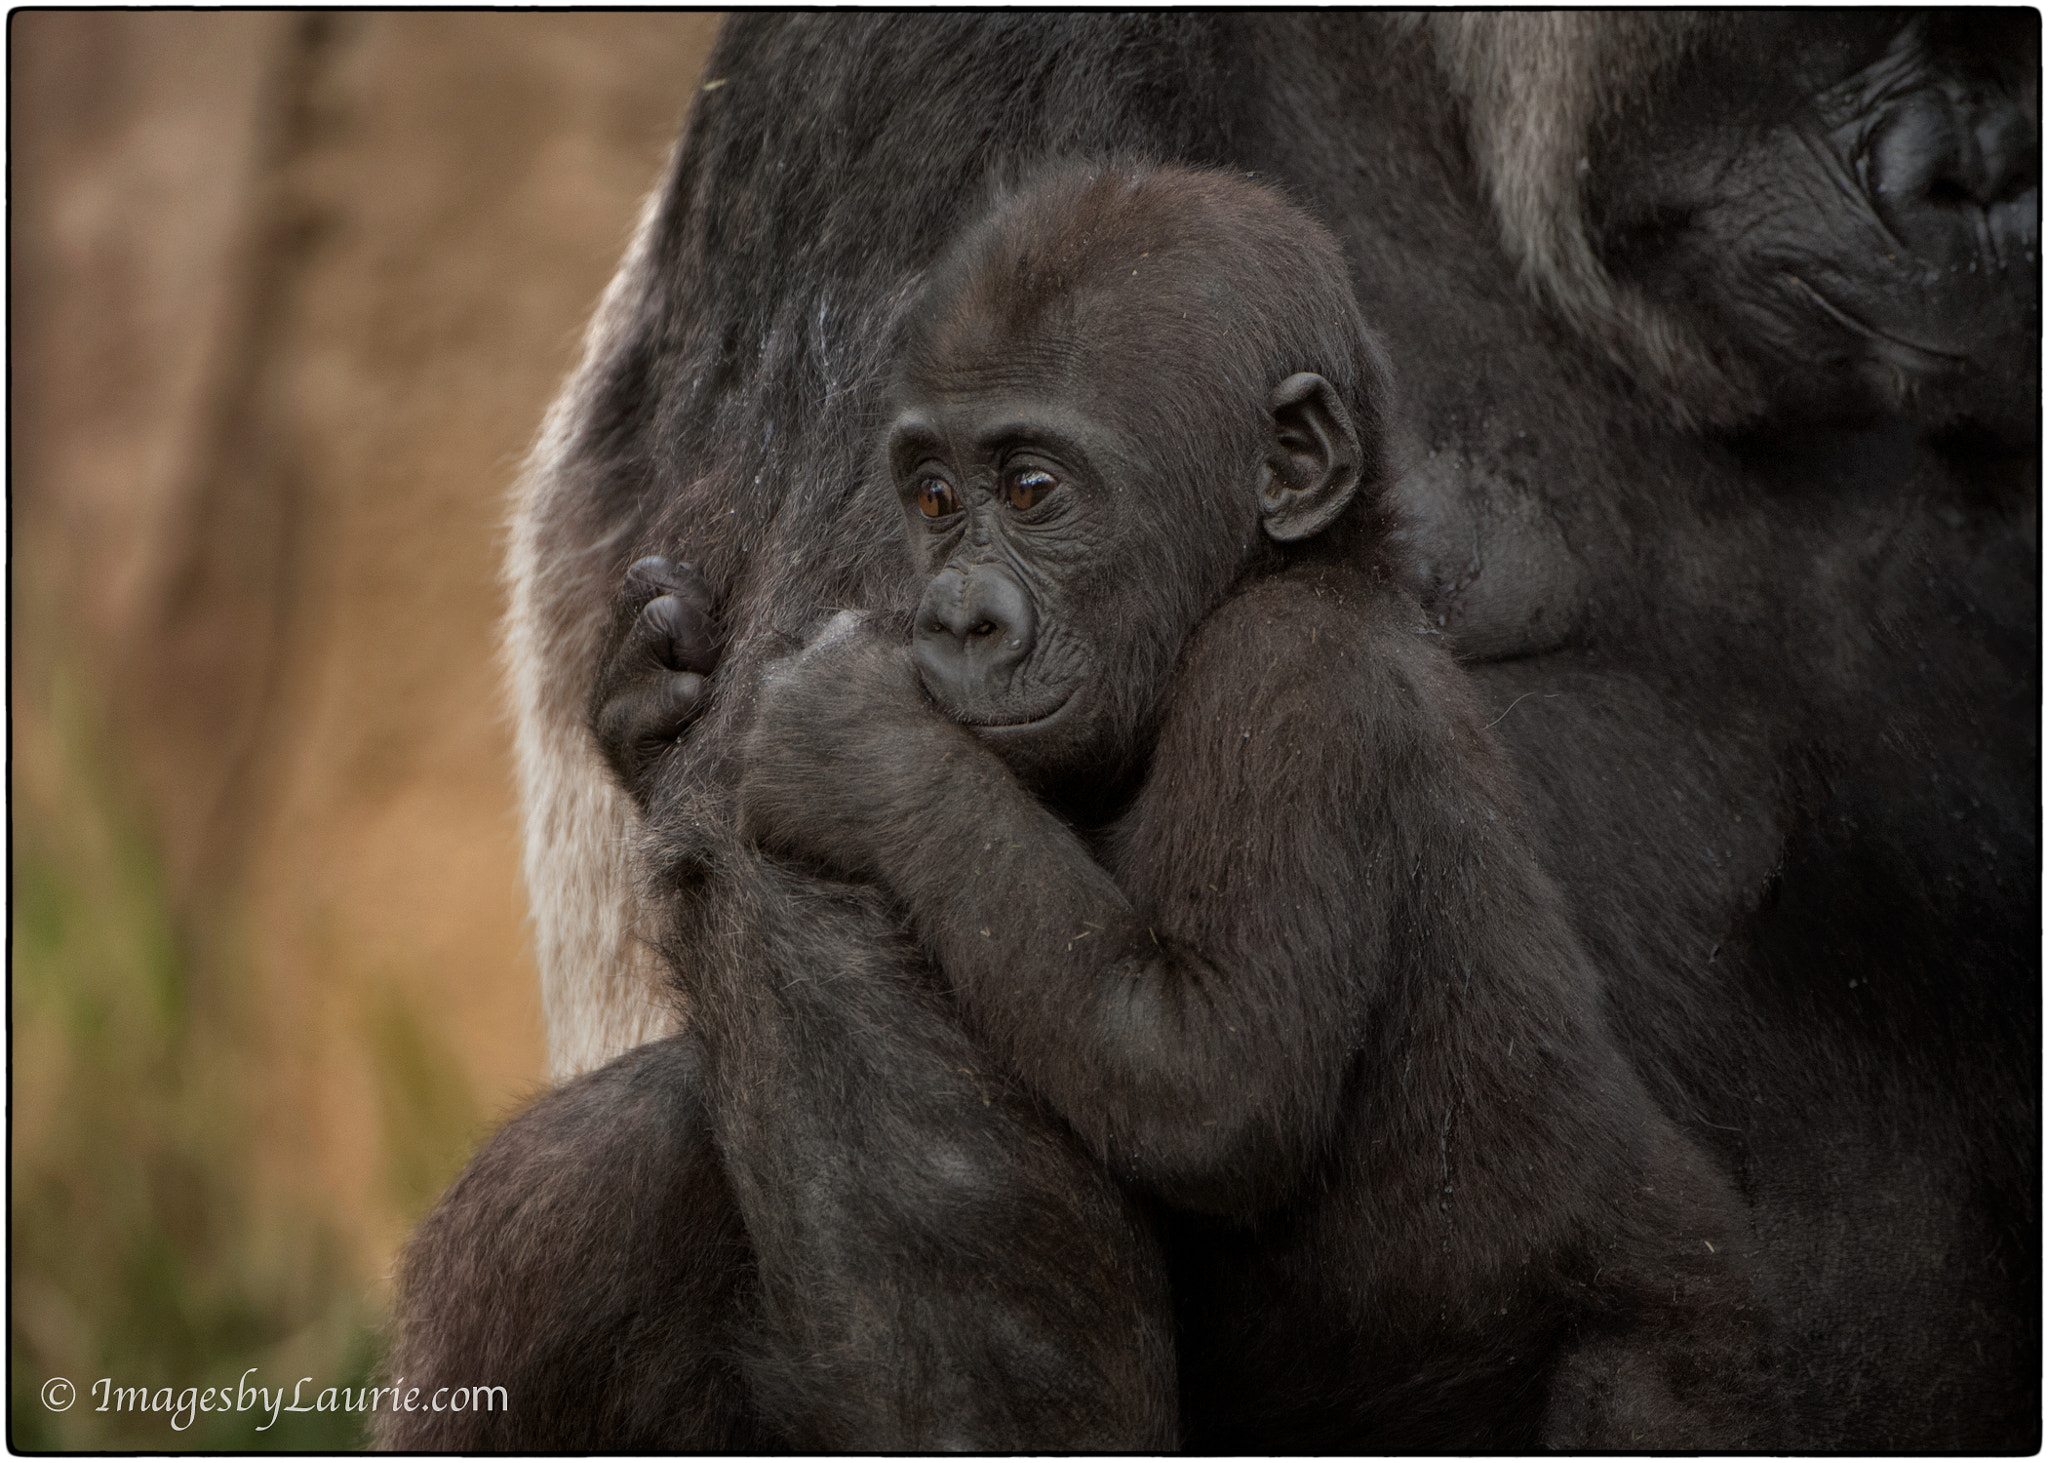 Photograph A Little Insecure by Laurie Rubin on 500px